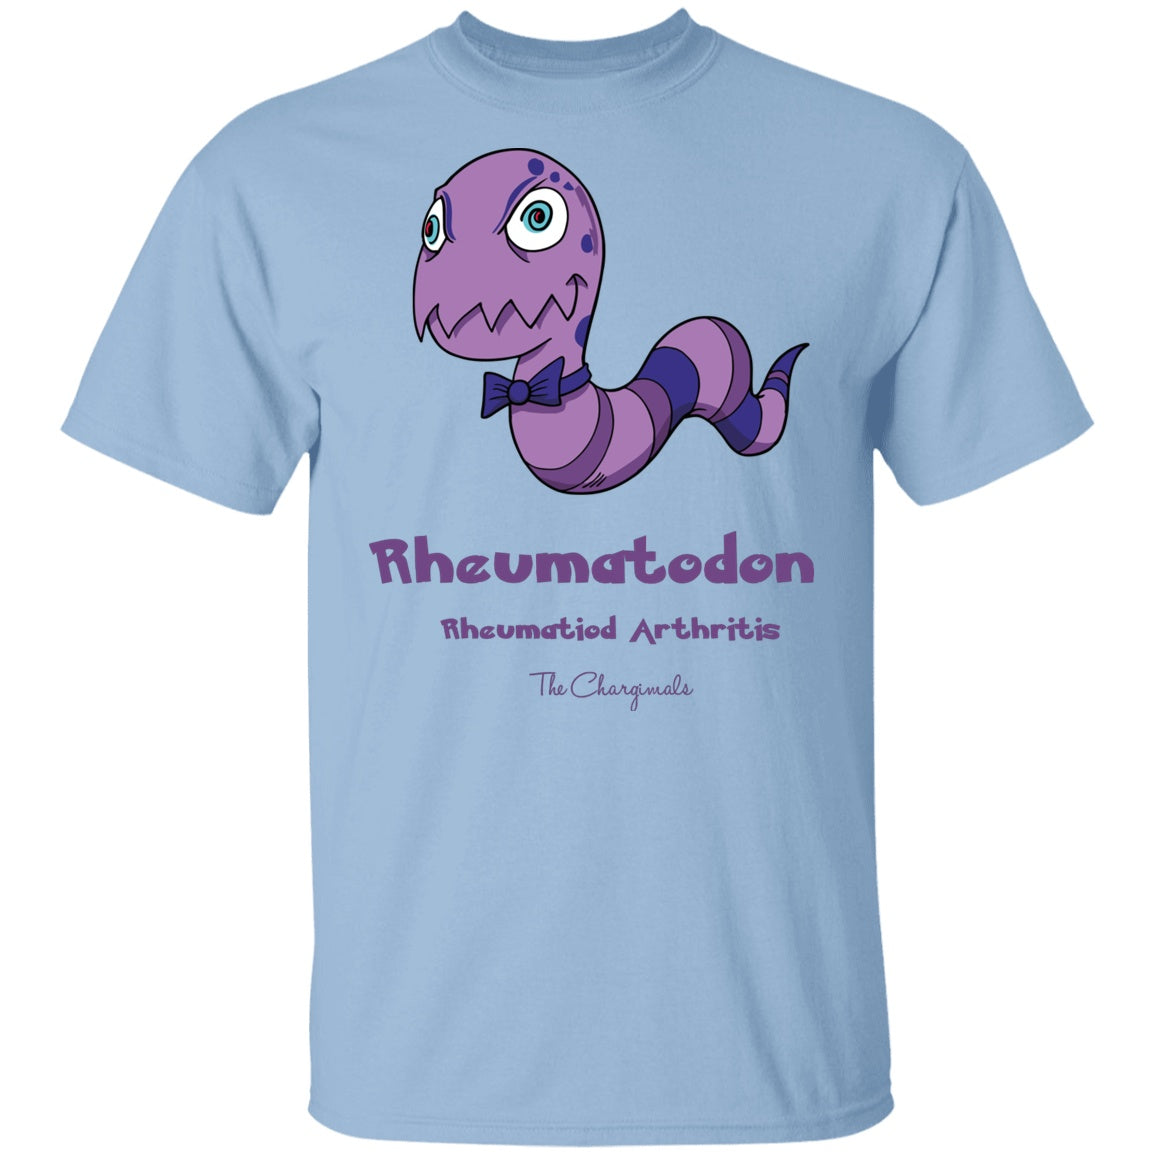 Mat the Rheumatoid Arthritis Monster Shirts and a Hoodie